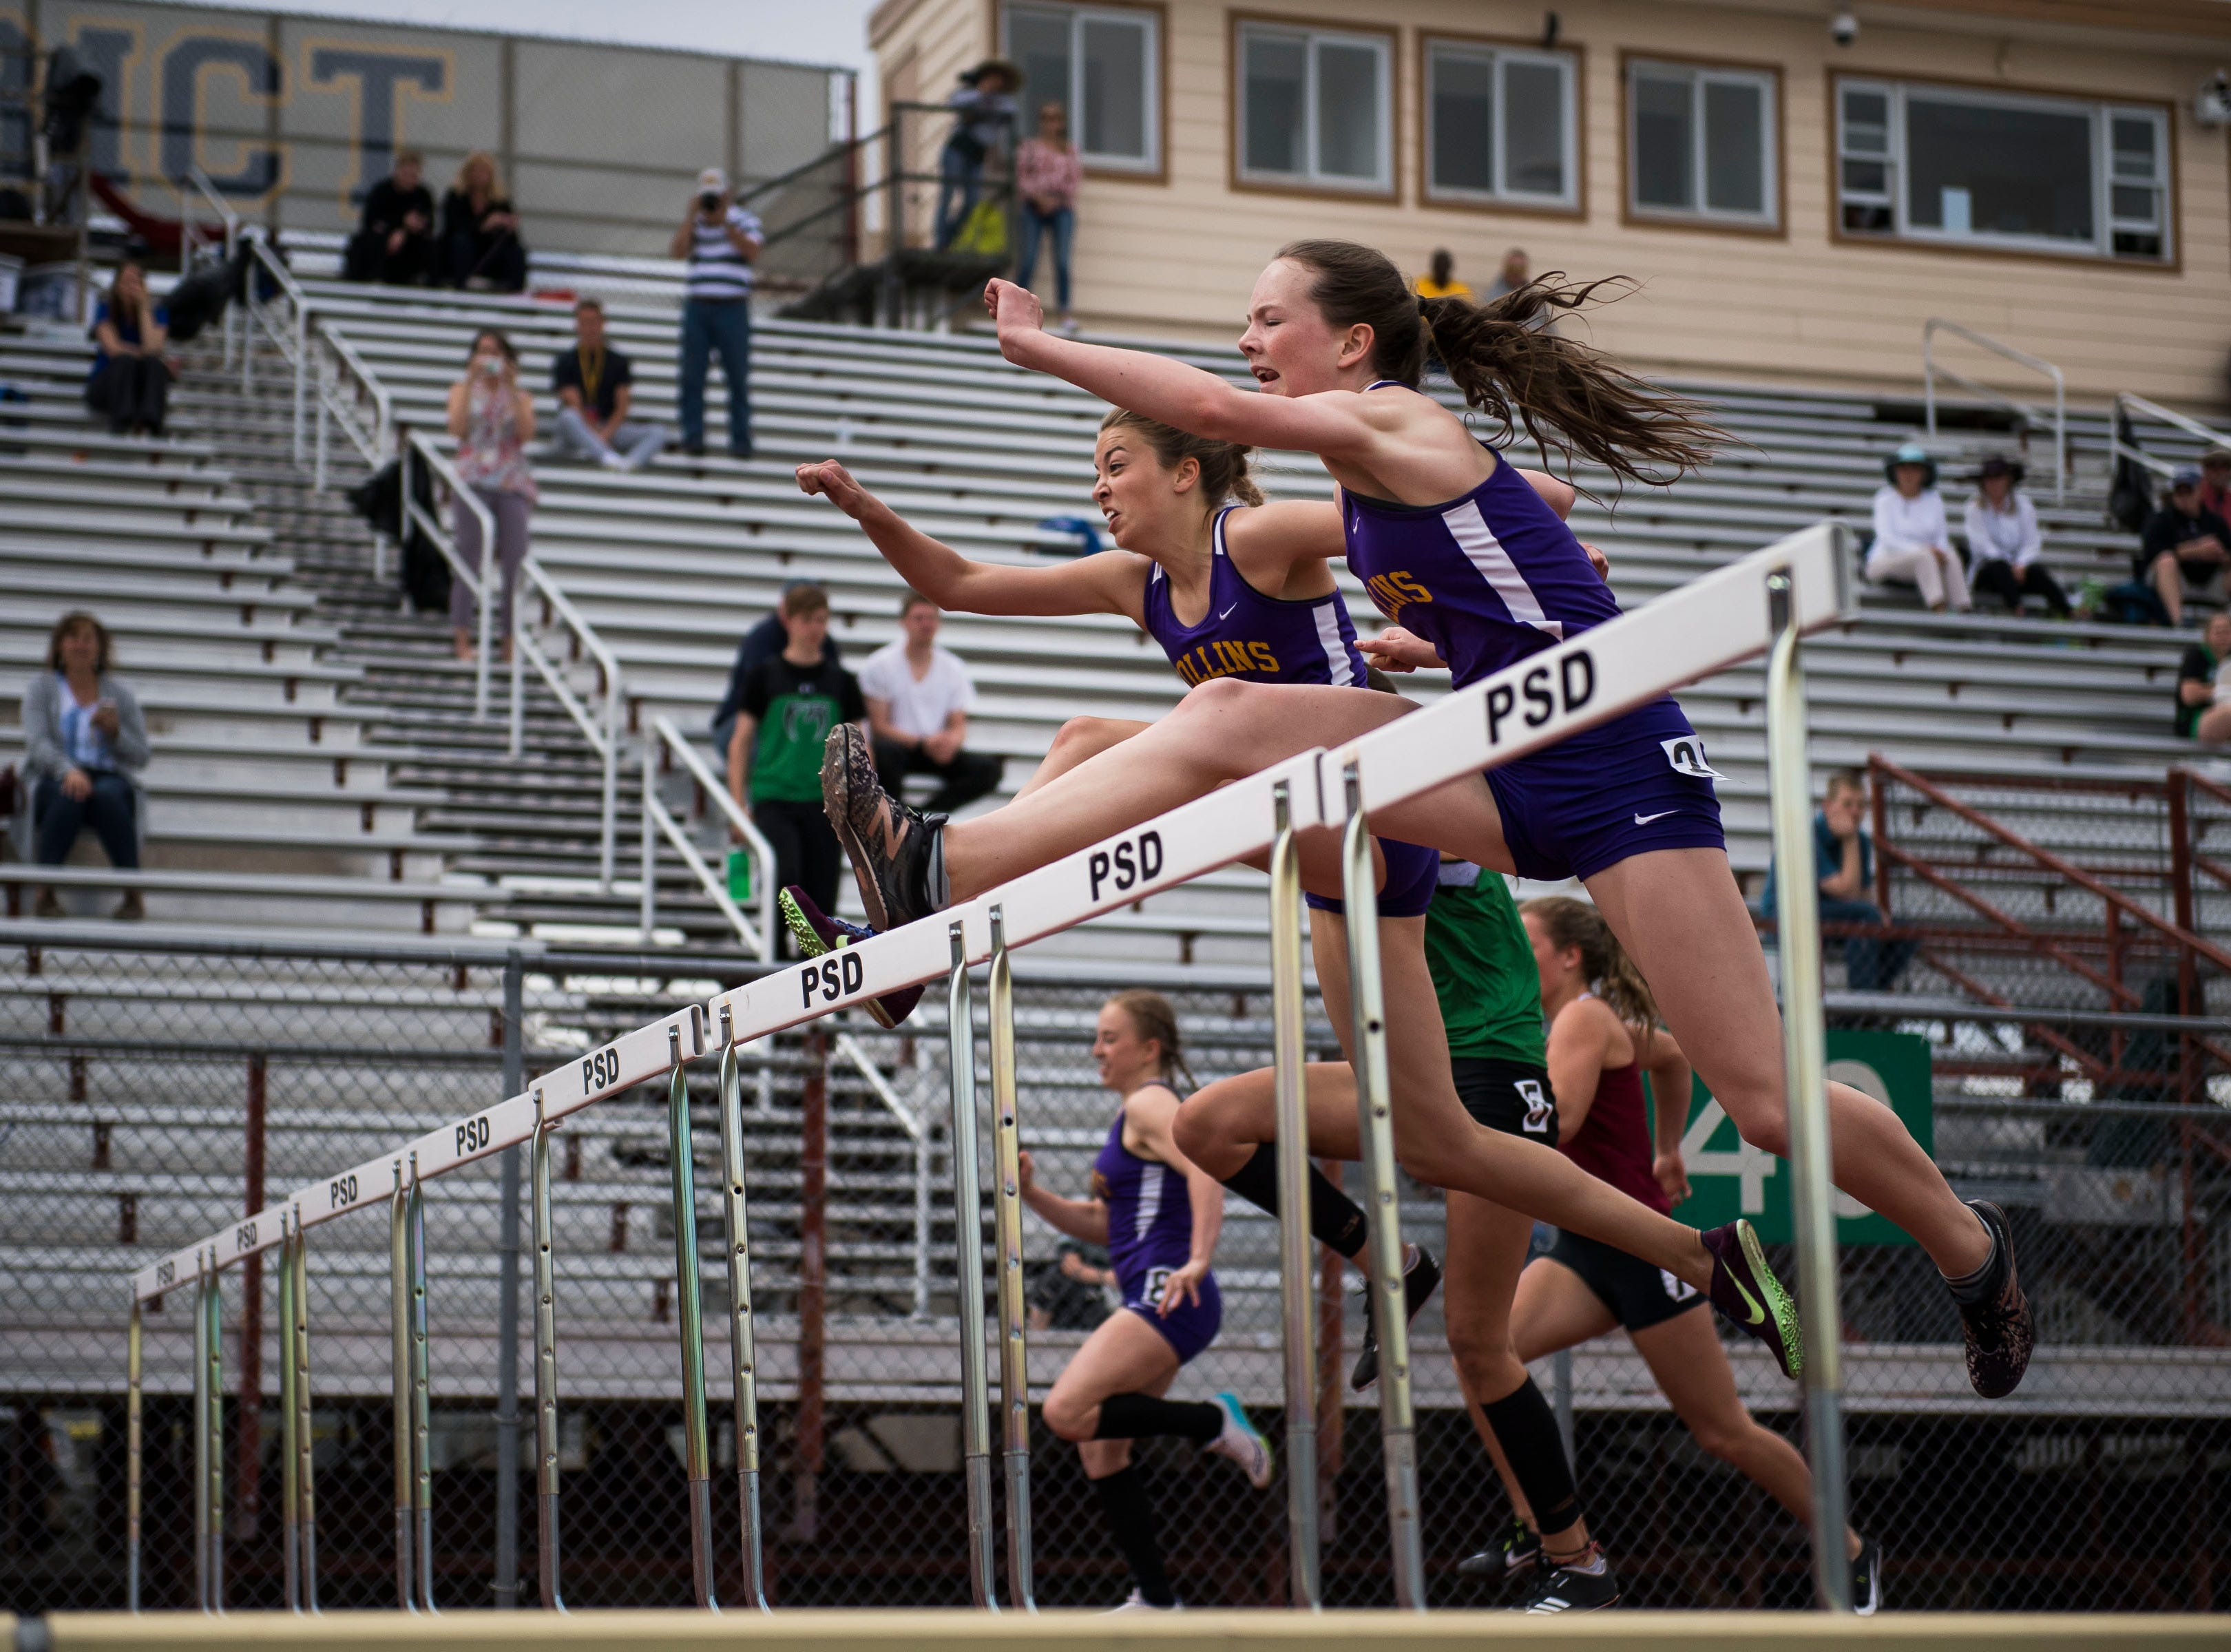 Fort Collins High School'd Riley Dodd, right, and Samantha Gordon lead their heat in the girls 100-meter hurdles during the Randy Yaussi City Track Championships on Tuesday, April 9, 2019, at French Field in Fort Collins, Colo.